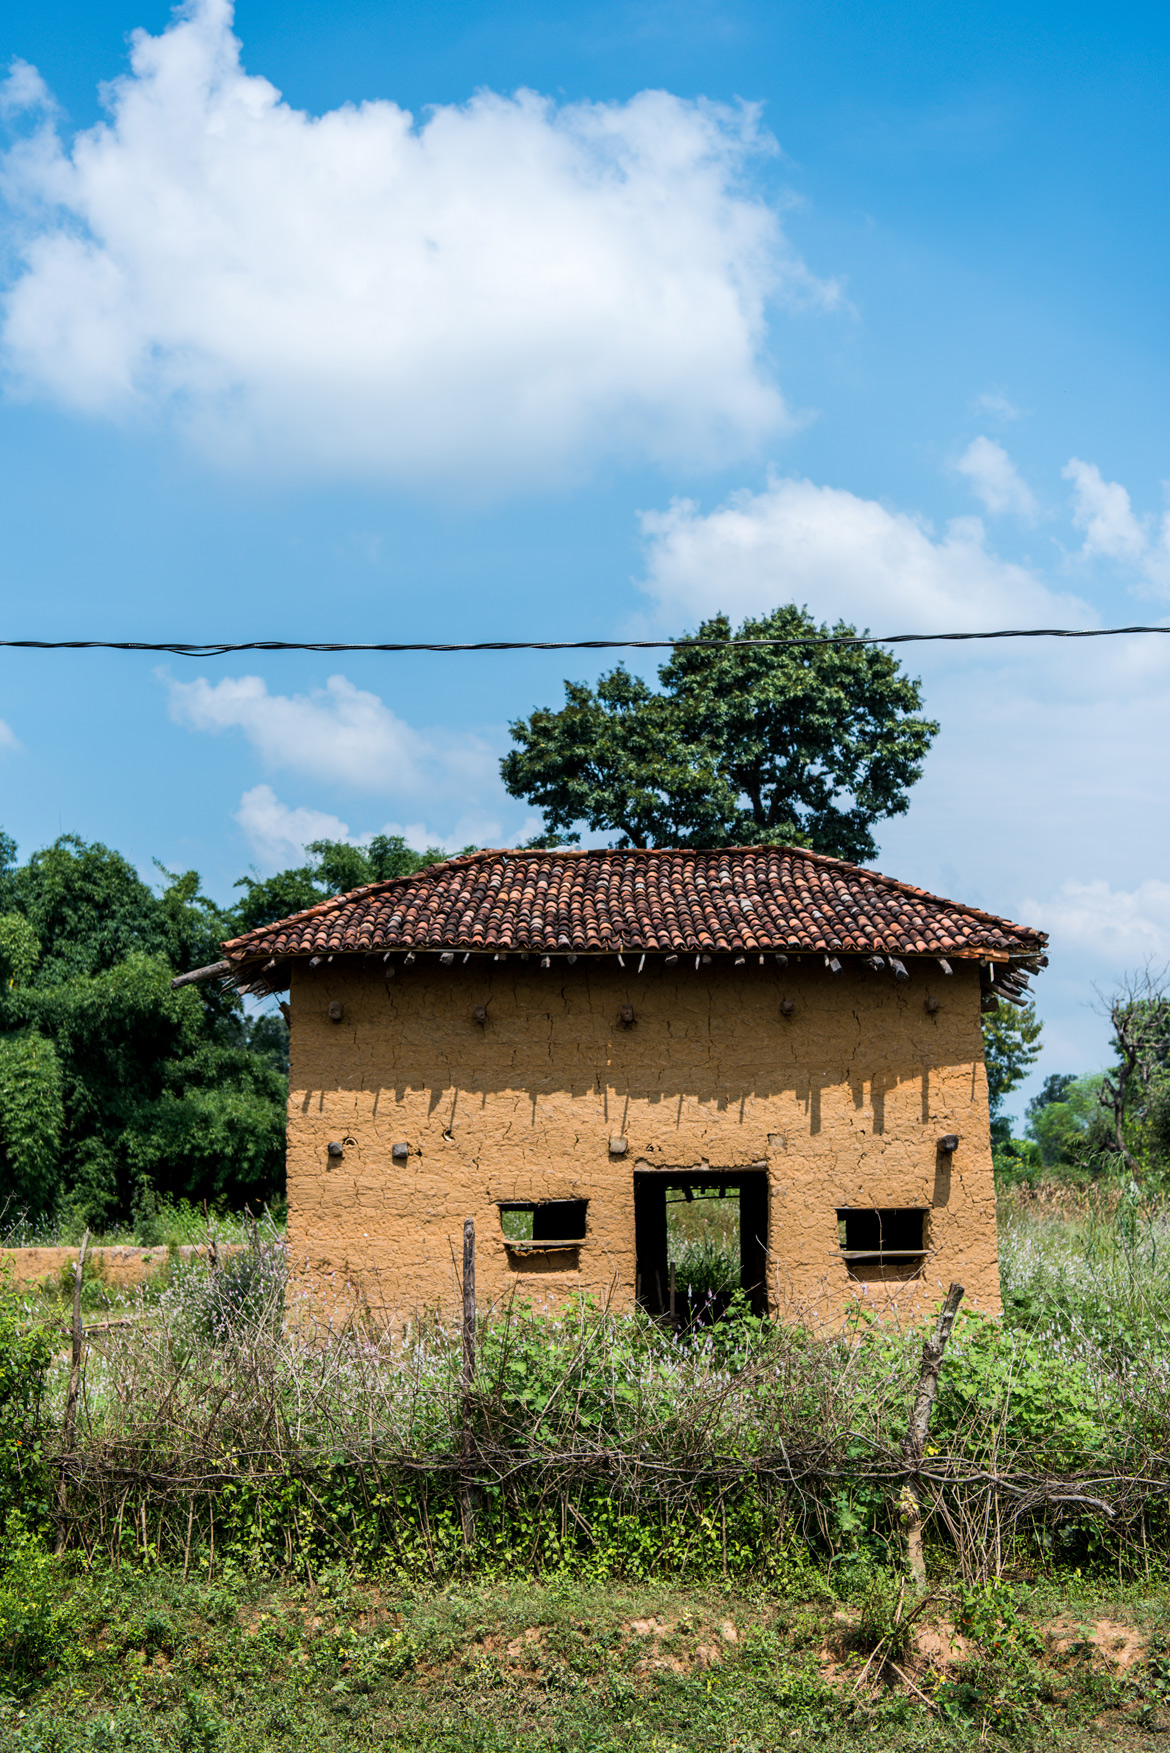 At Sarekha village in Kanha, a mud structure is supported by a timber framework.